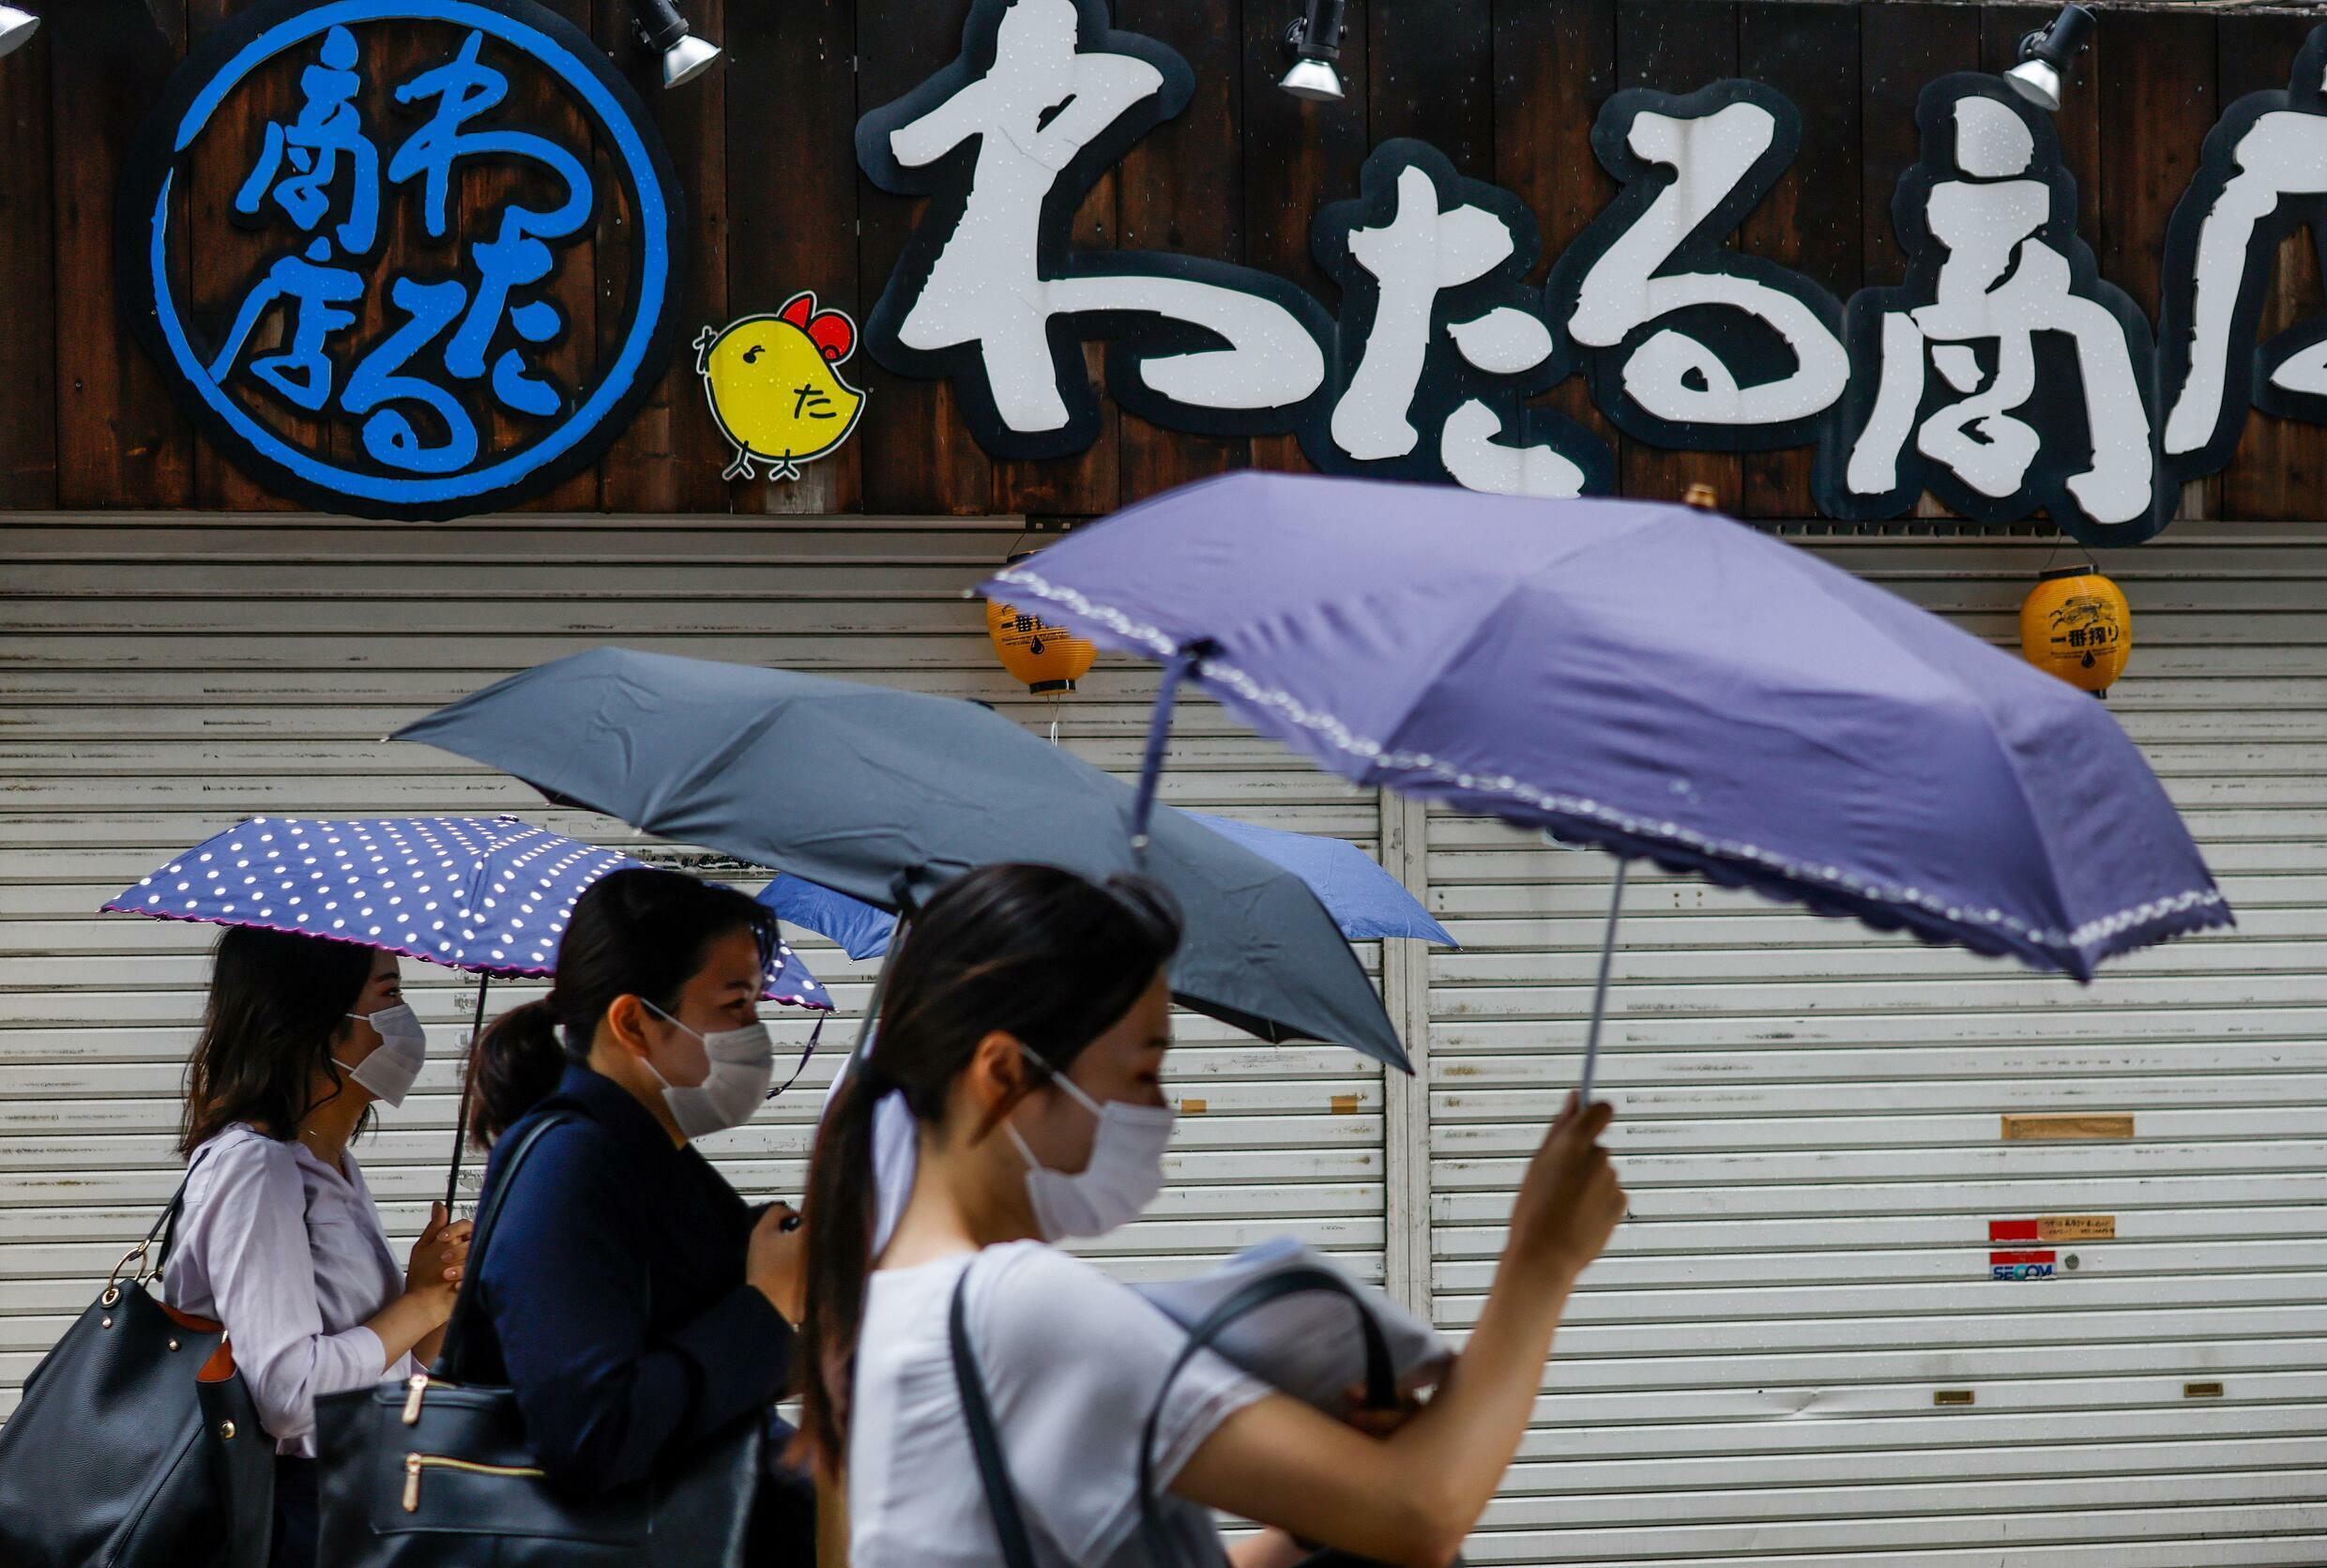 Scientists say climate change is intensifying the risk of heavy rain in Japan